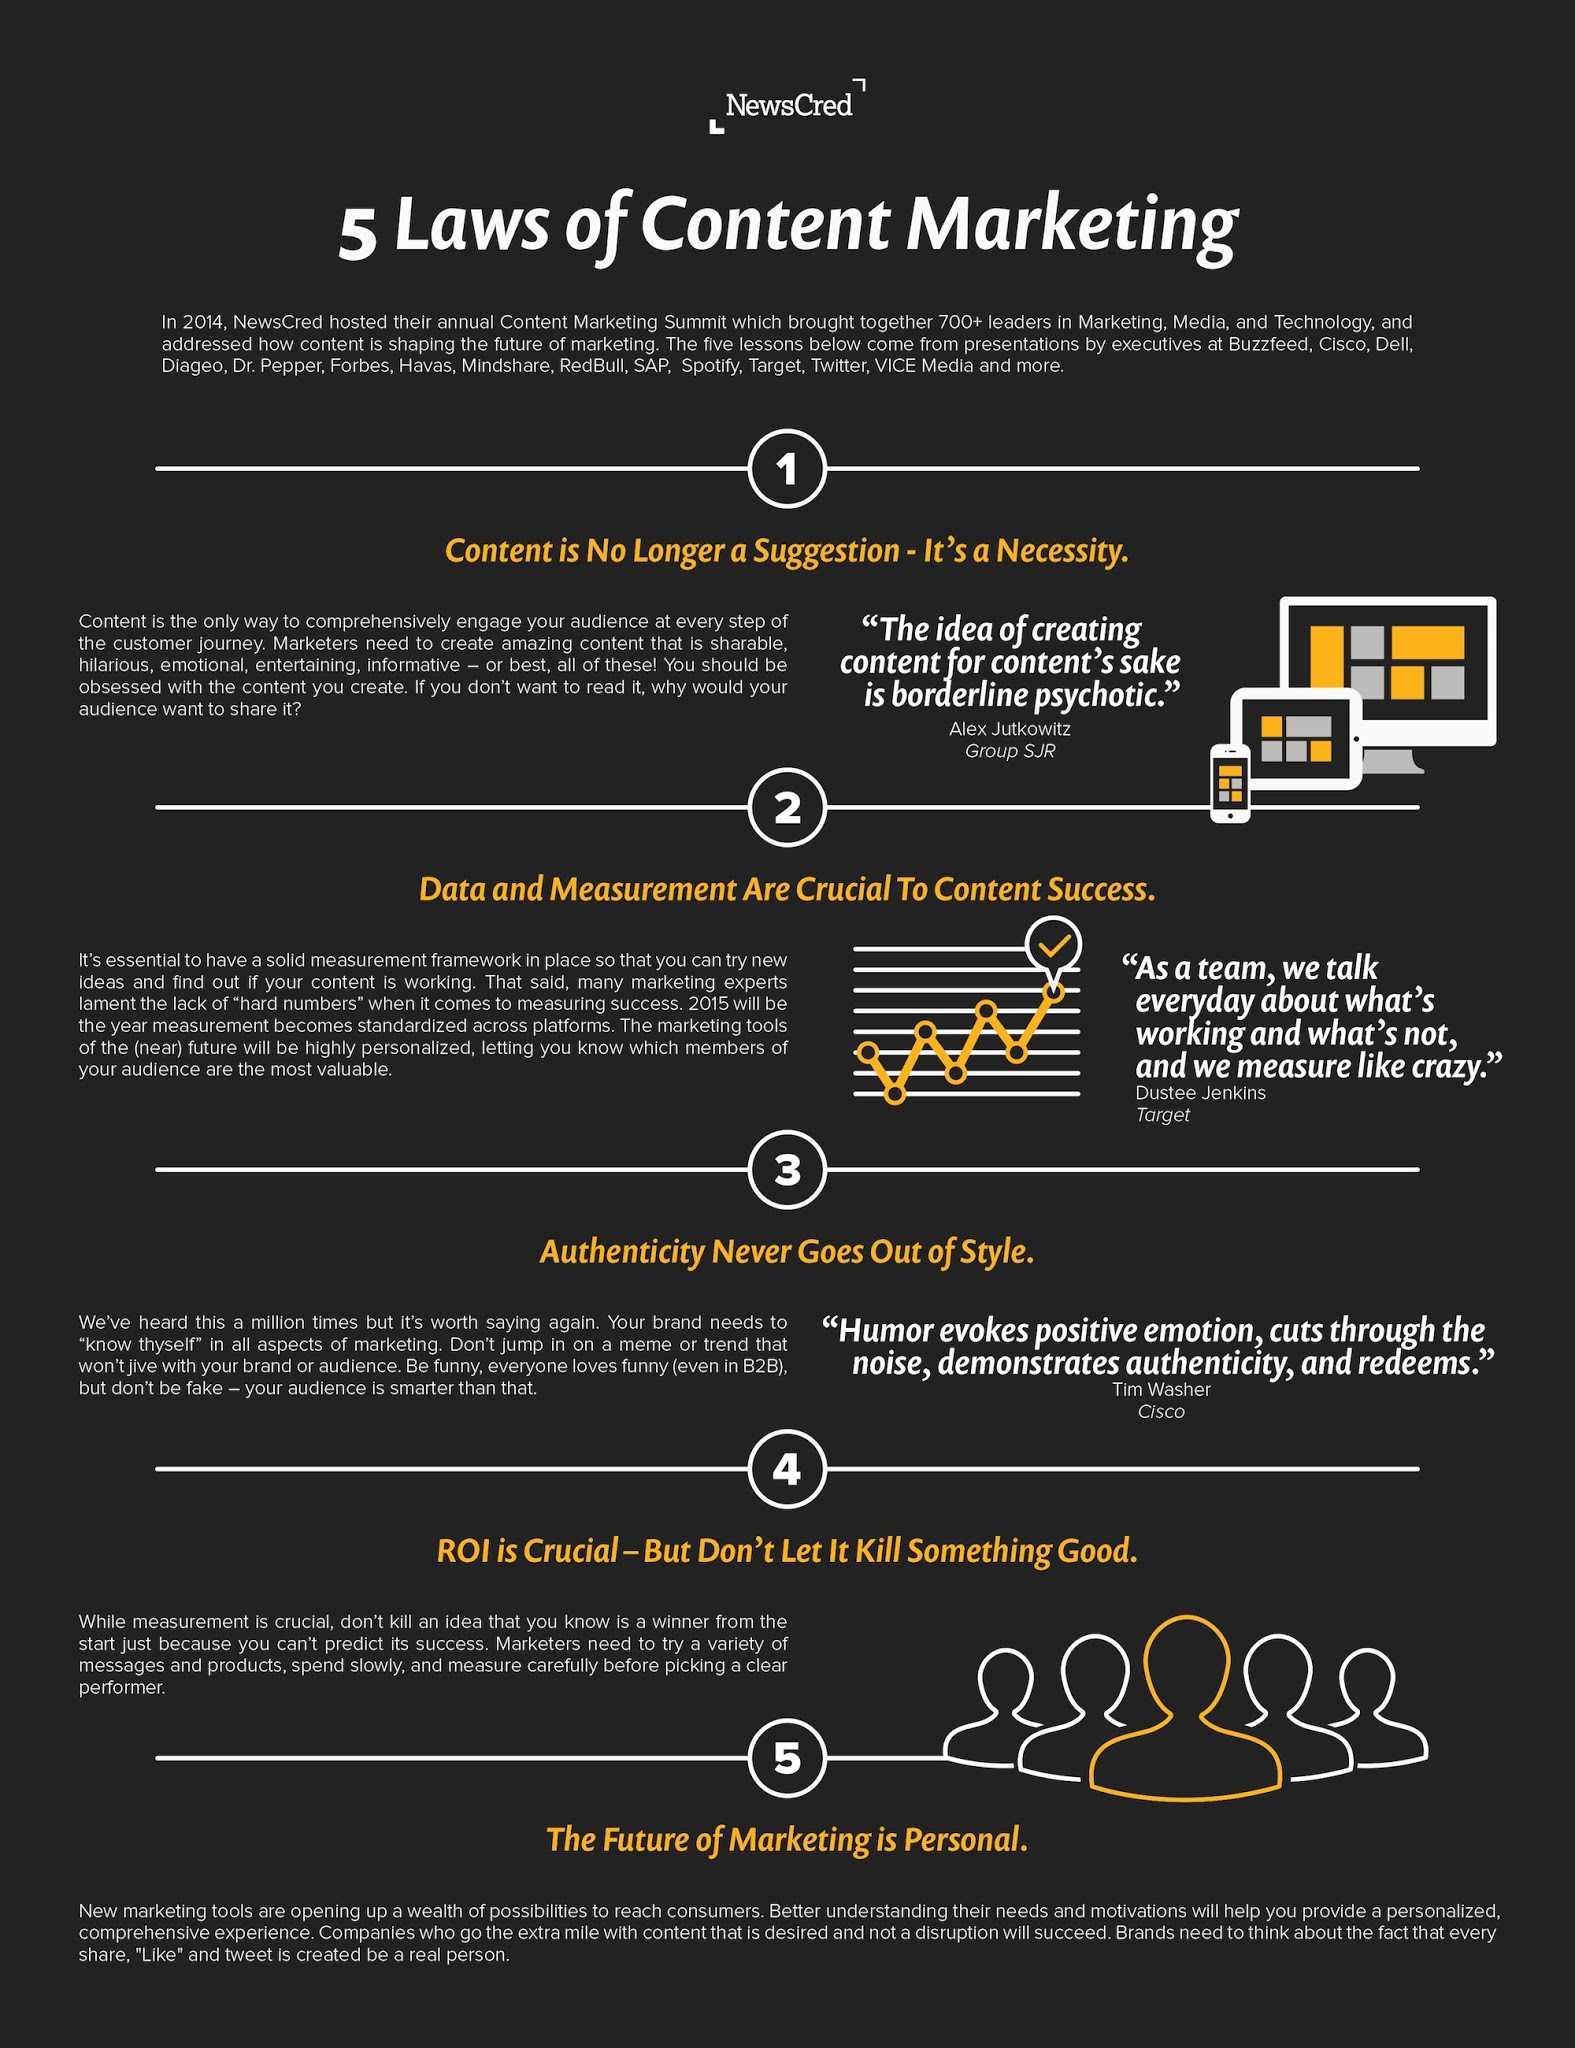 5-laws-of-content-marketing-infographic